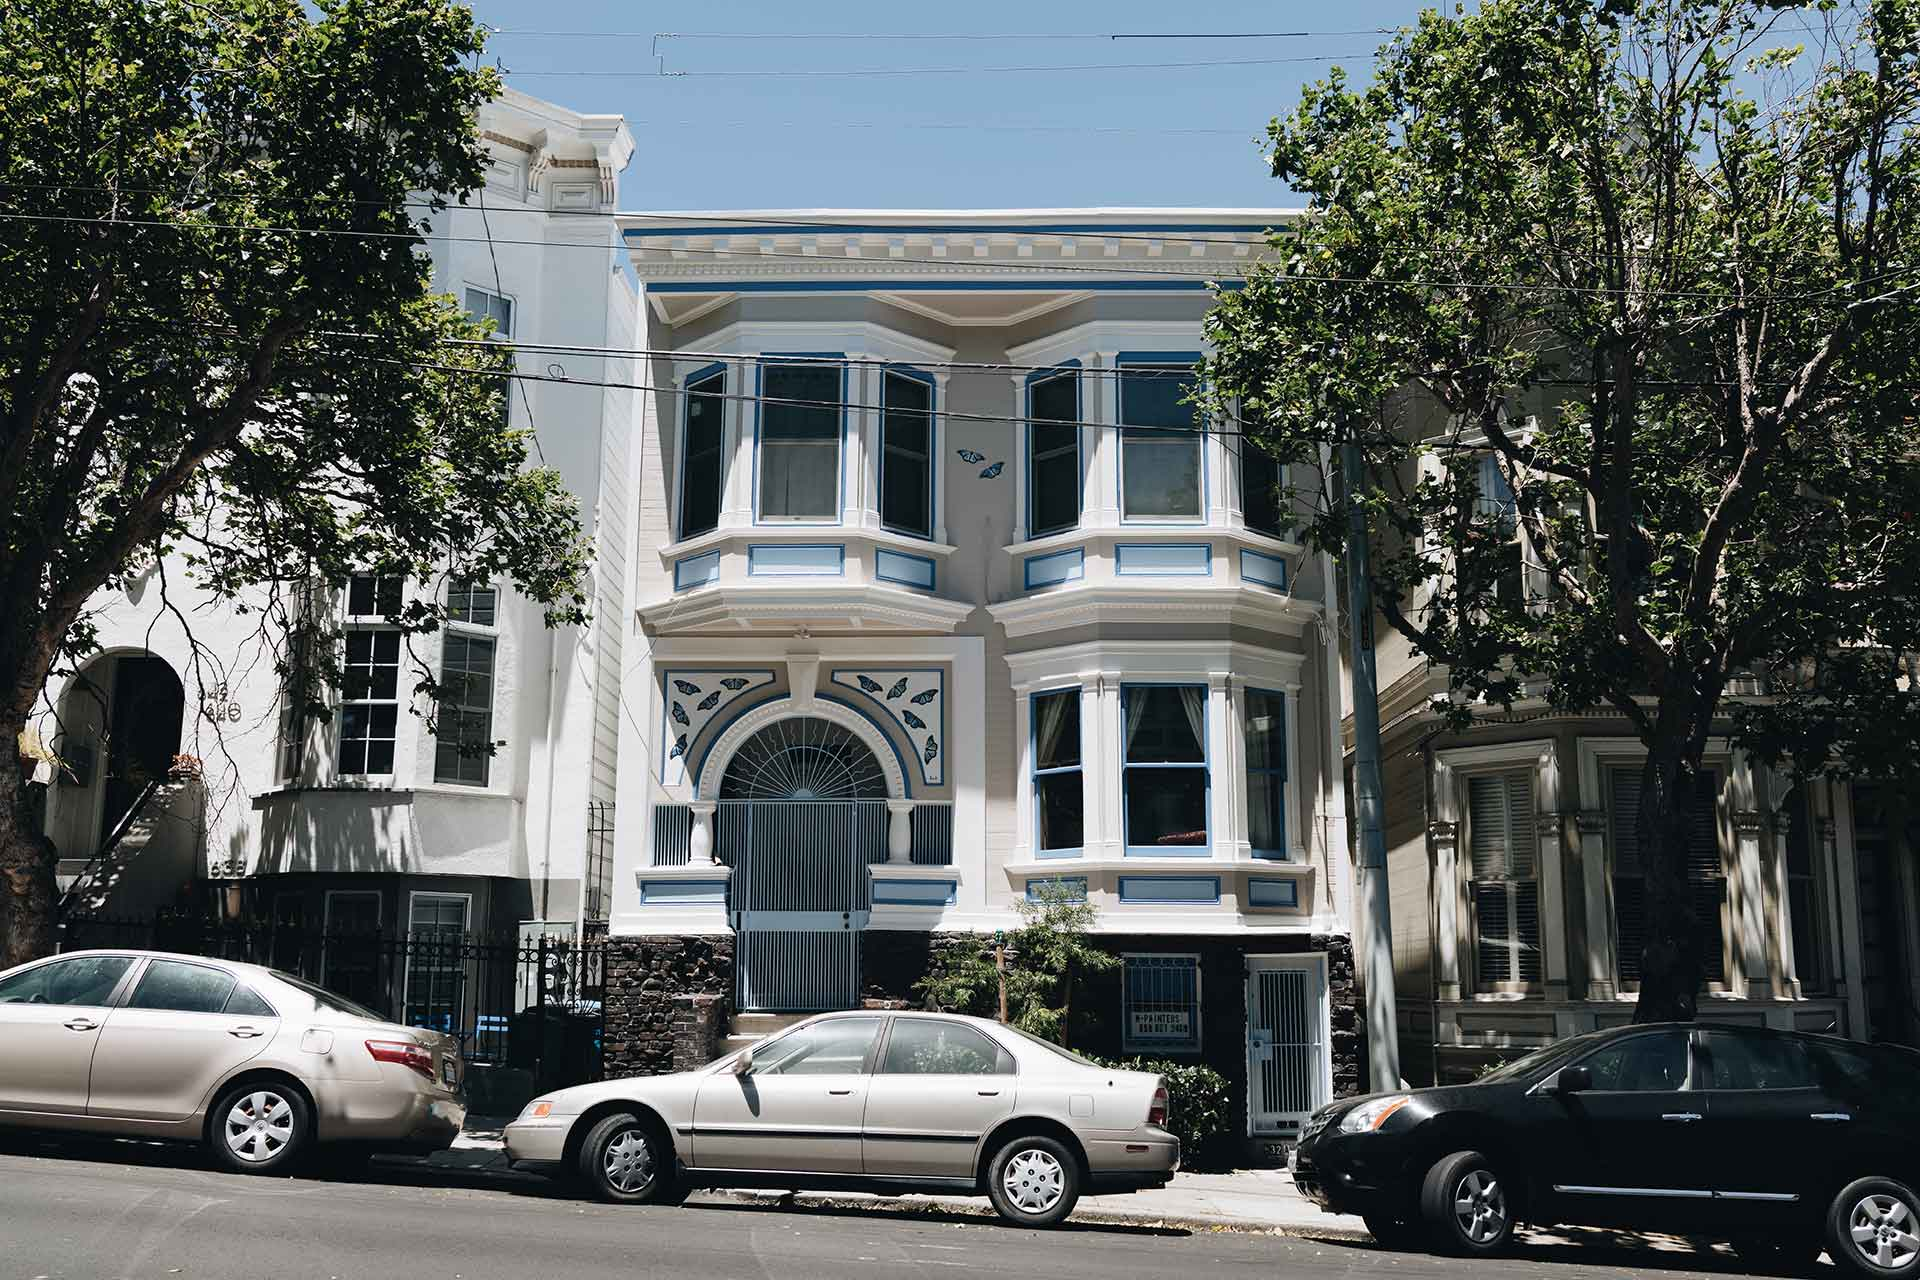 SF-VictorianHouses-1-1920x1280.jpg